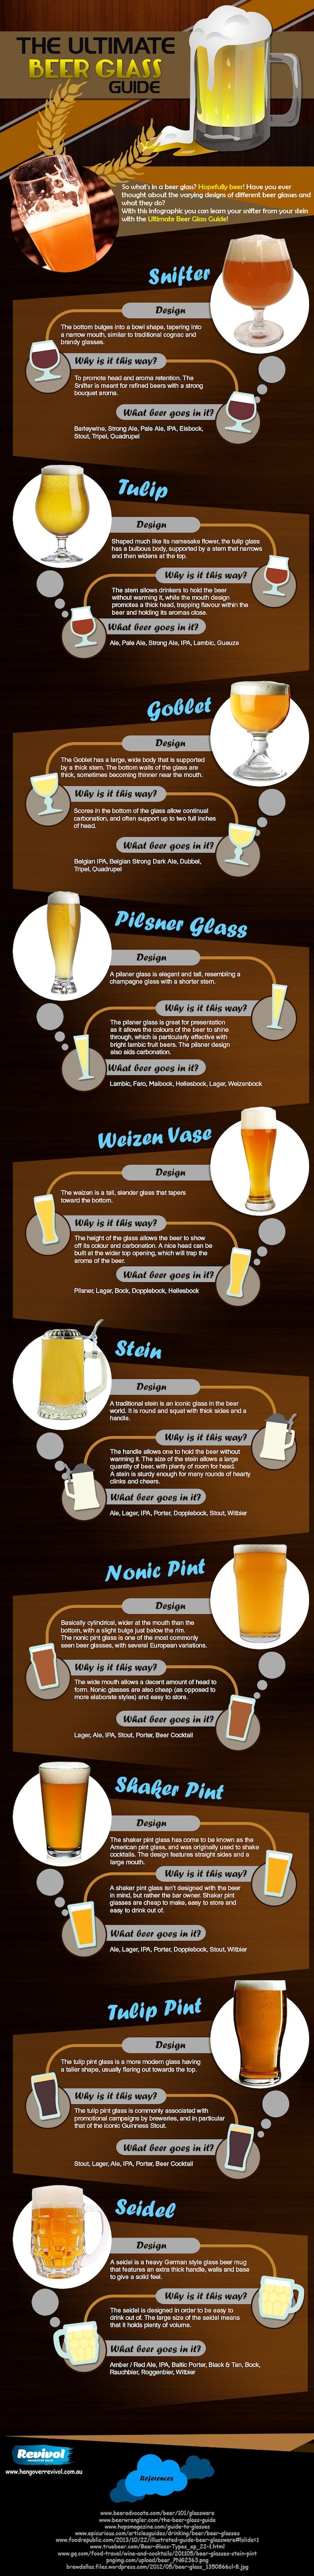 Hangover Revivol - Beer Glass Guide Infographic